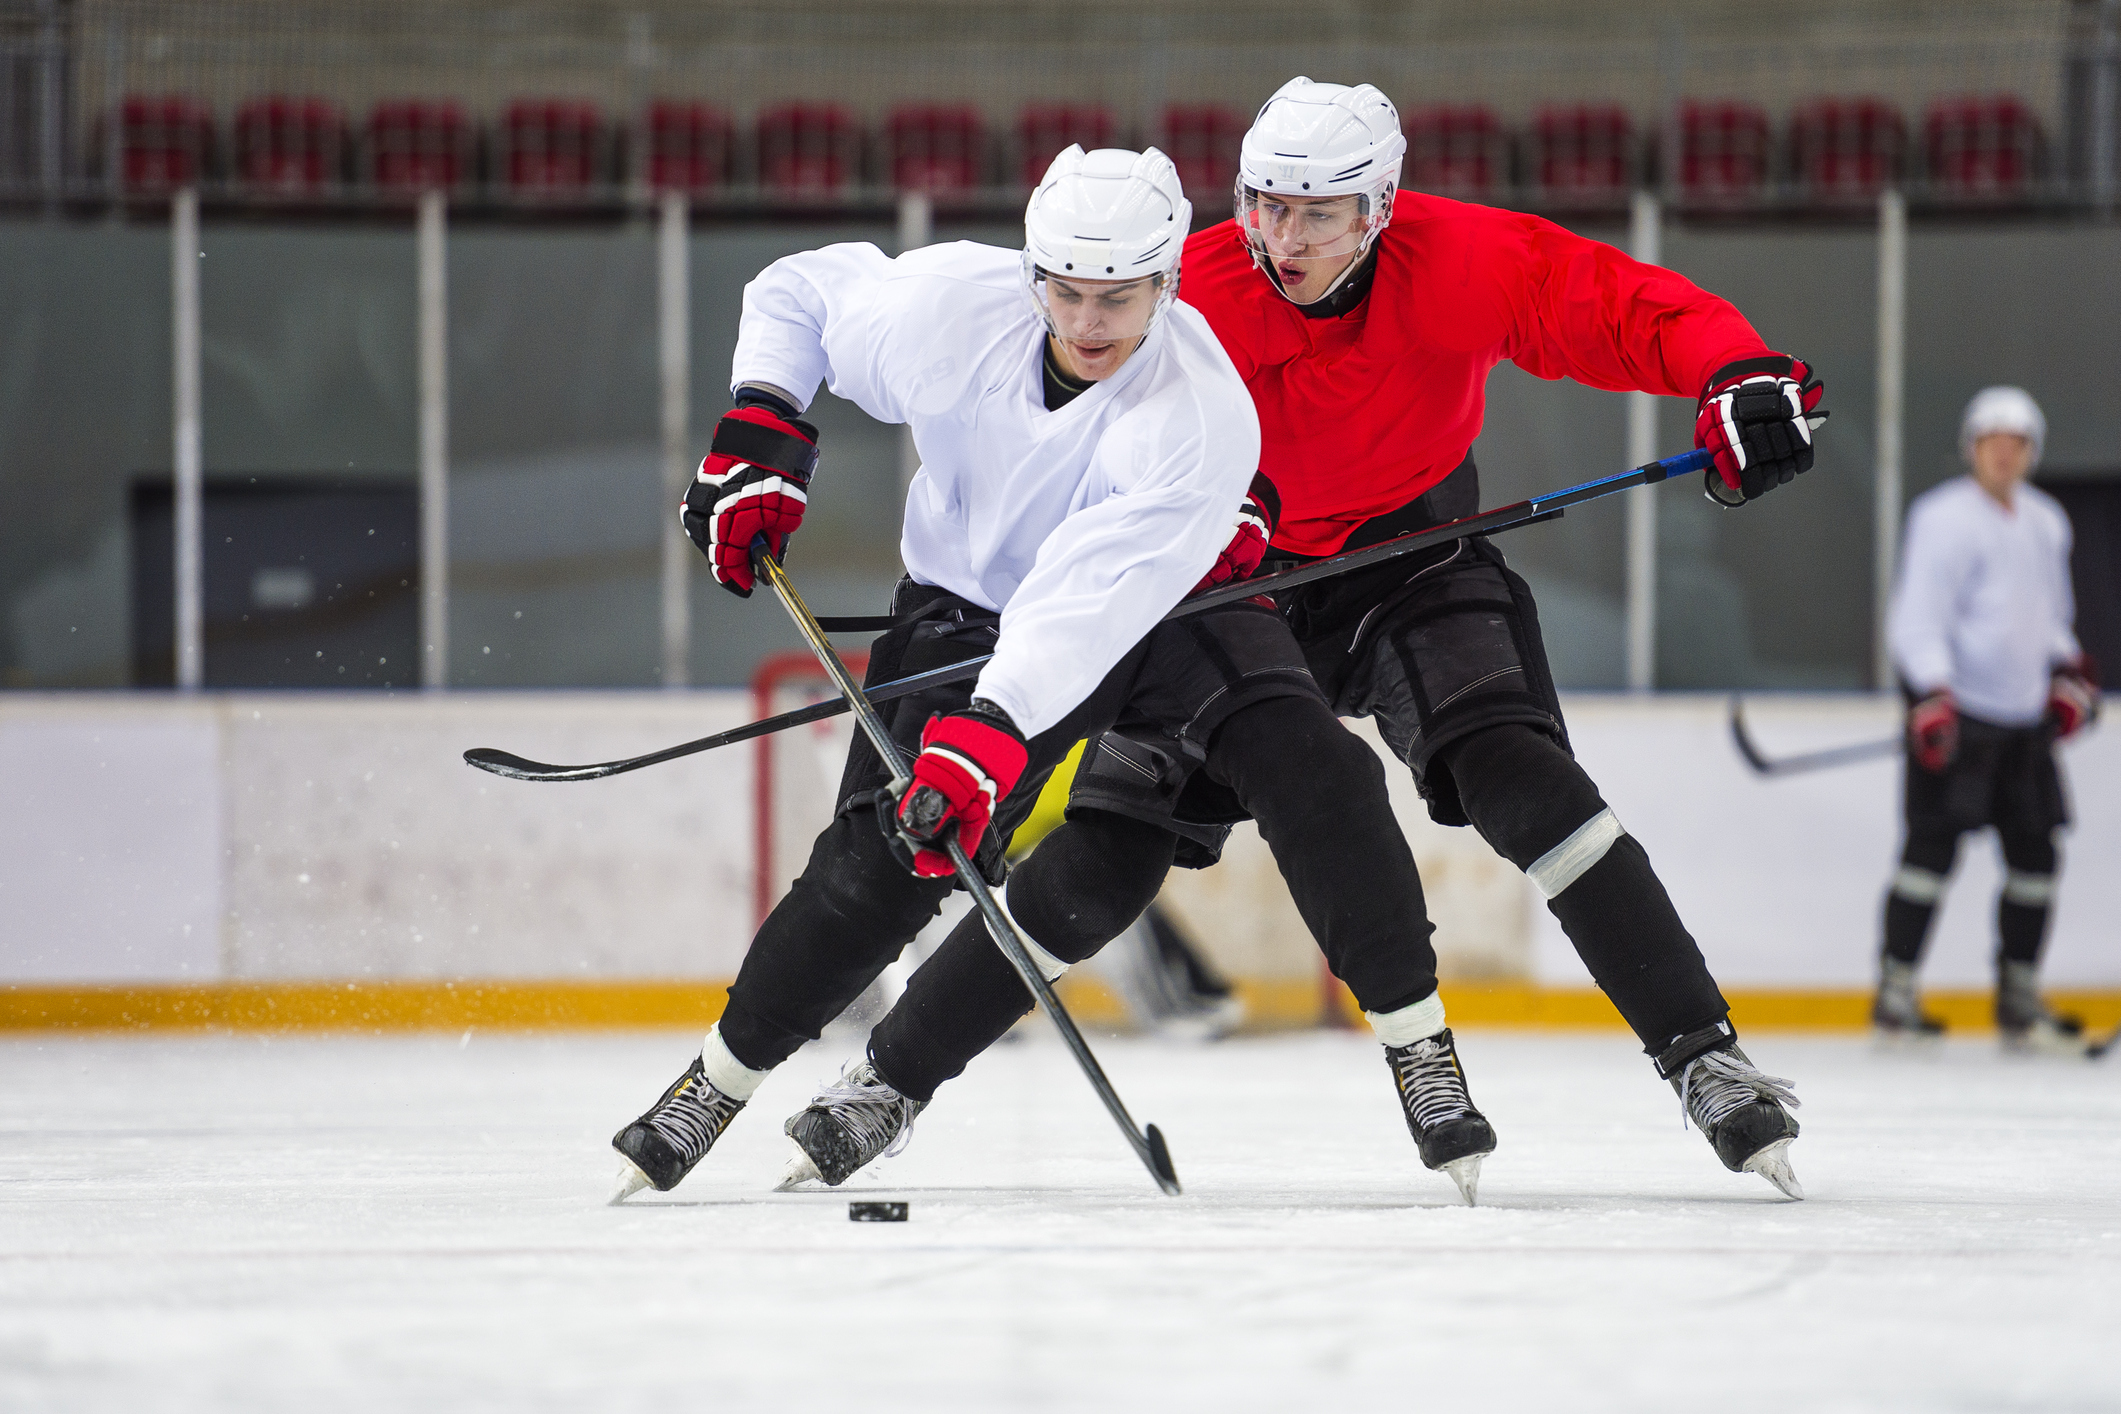 hockey-player-injuries-insport-centers